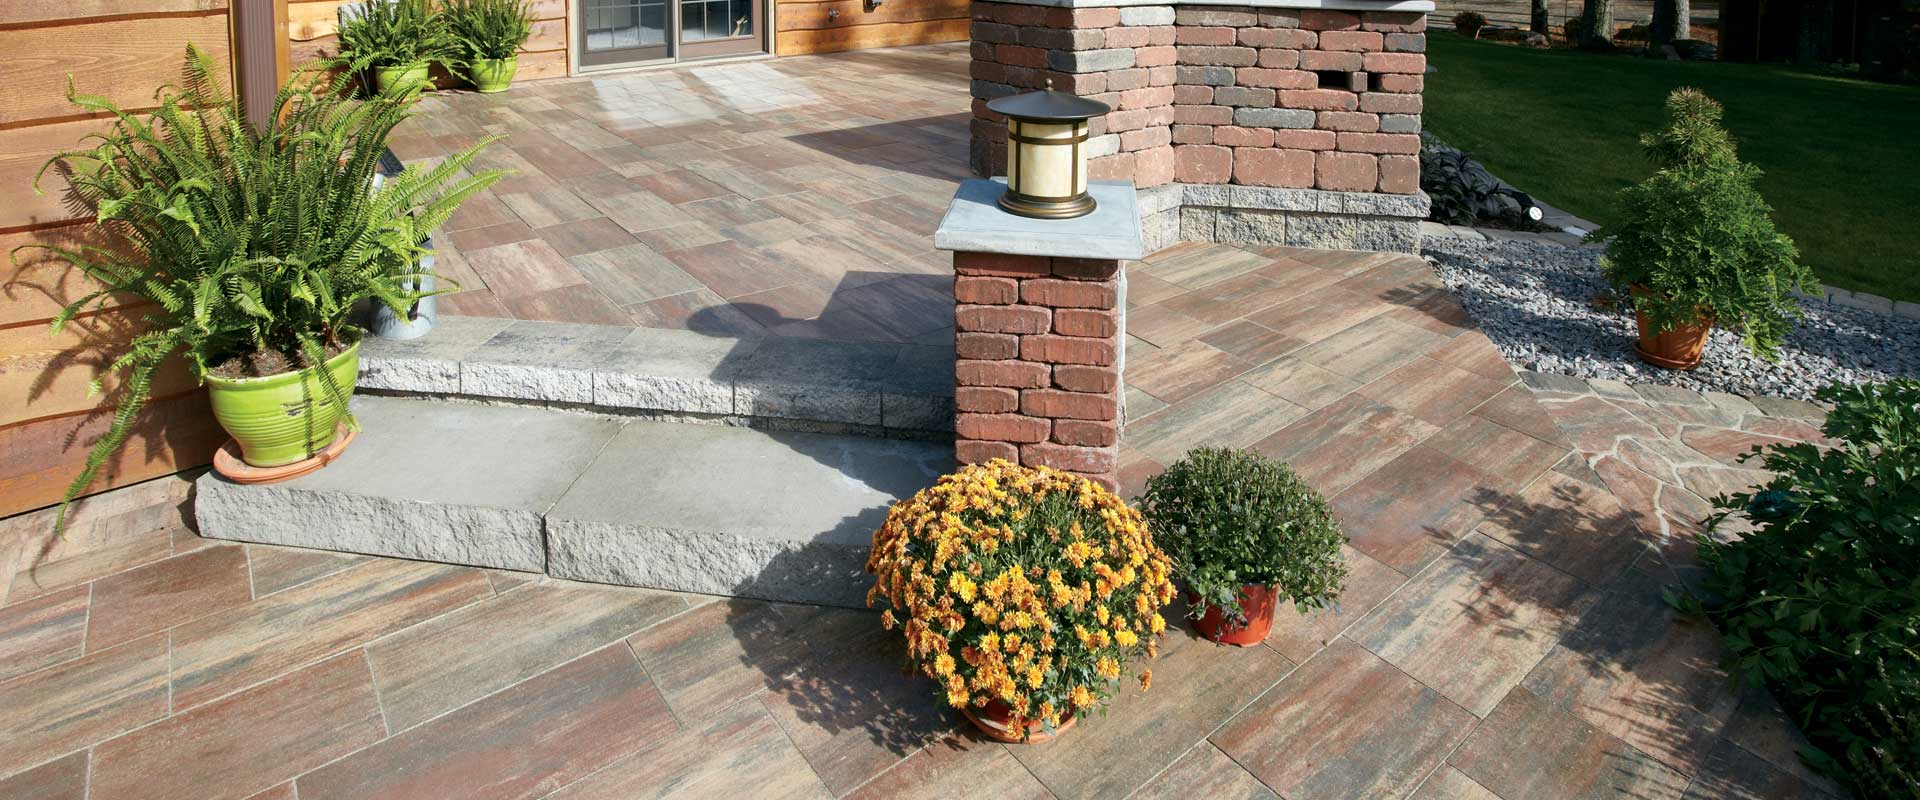 Grand milestone pavers and milestone pavers for Patio products